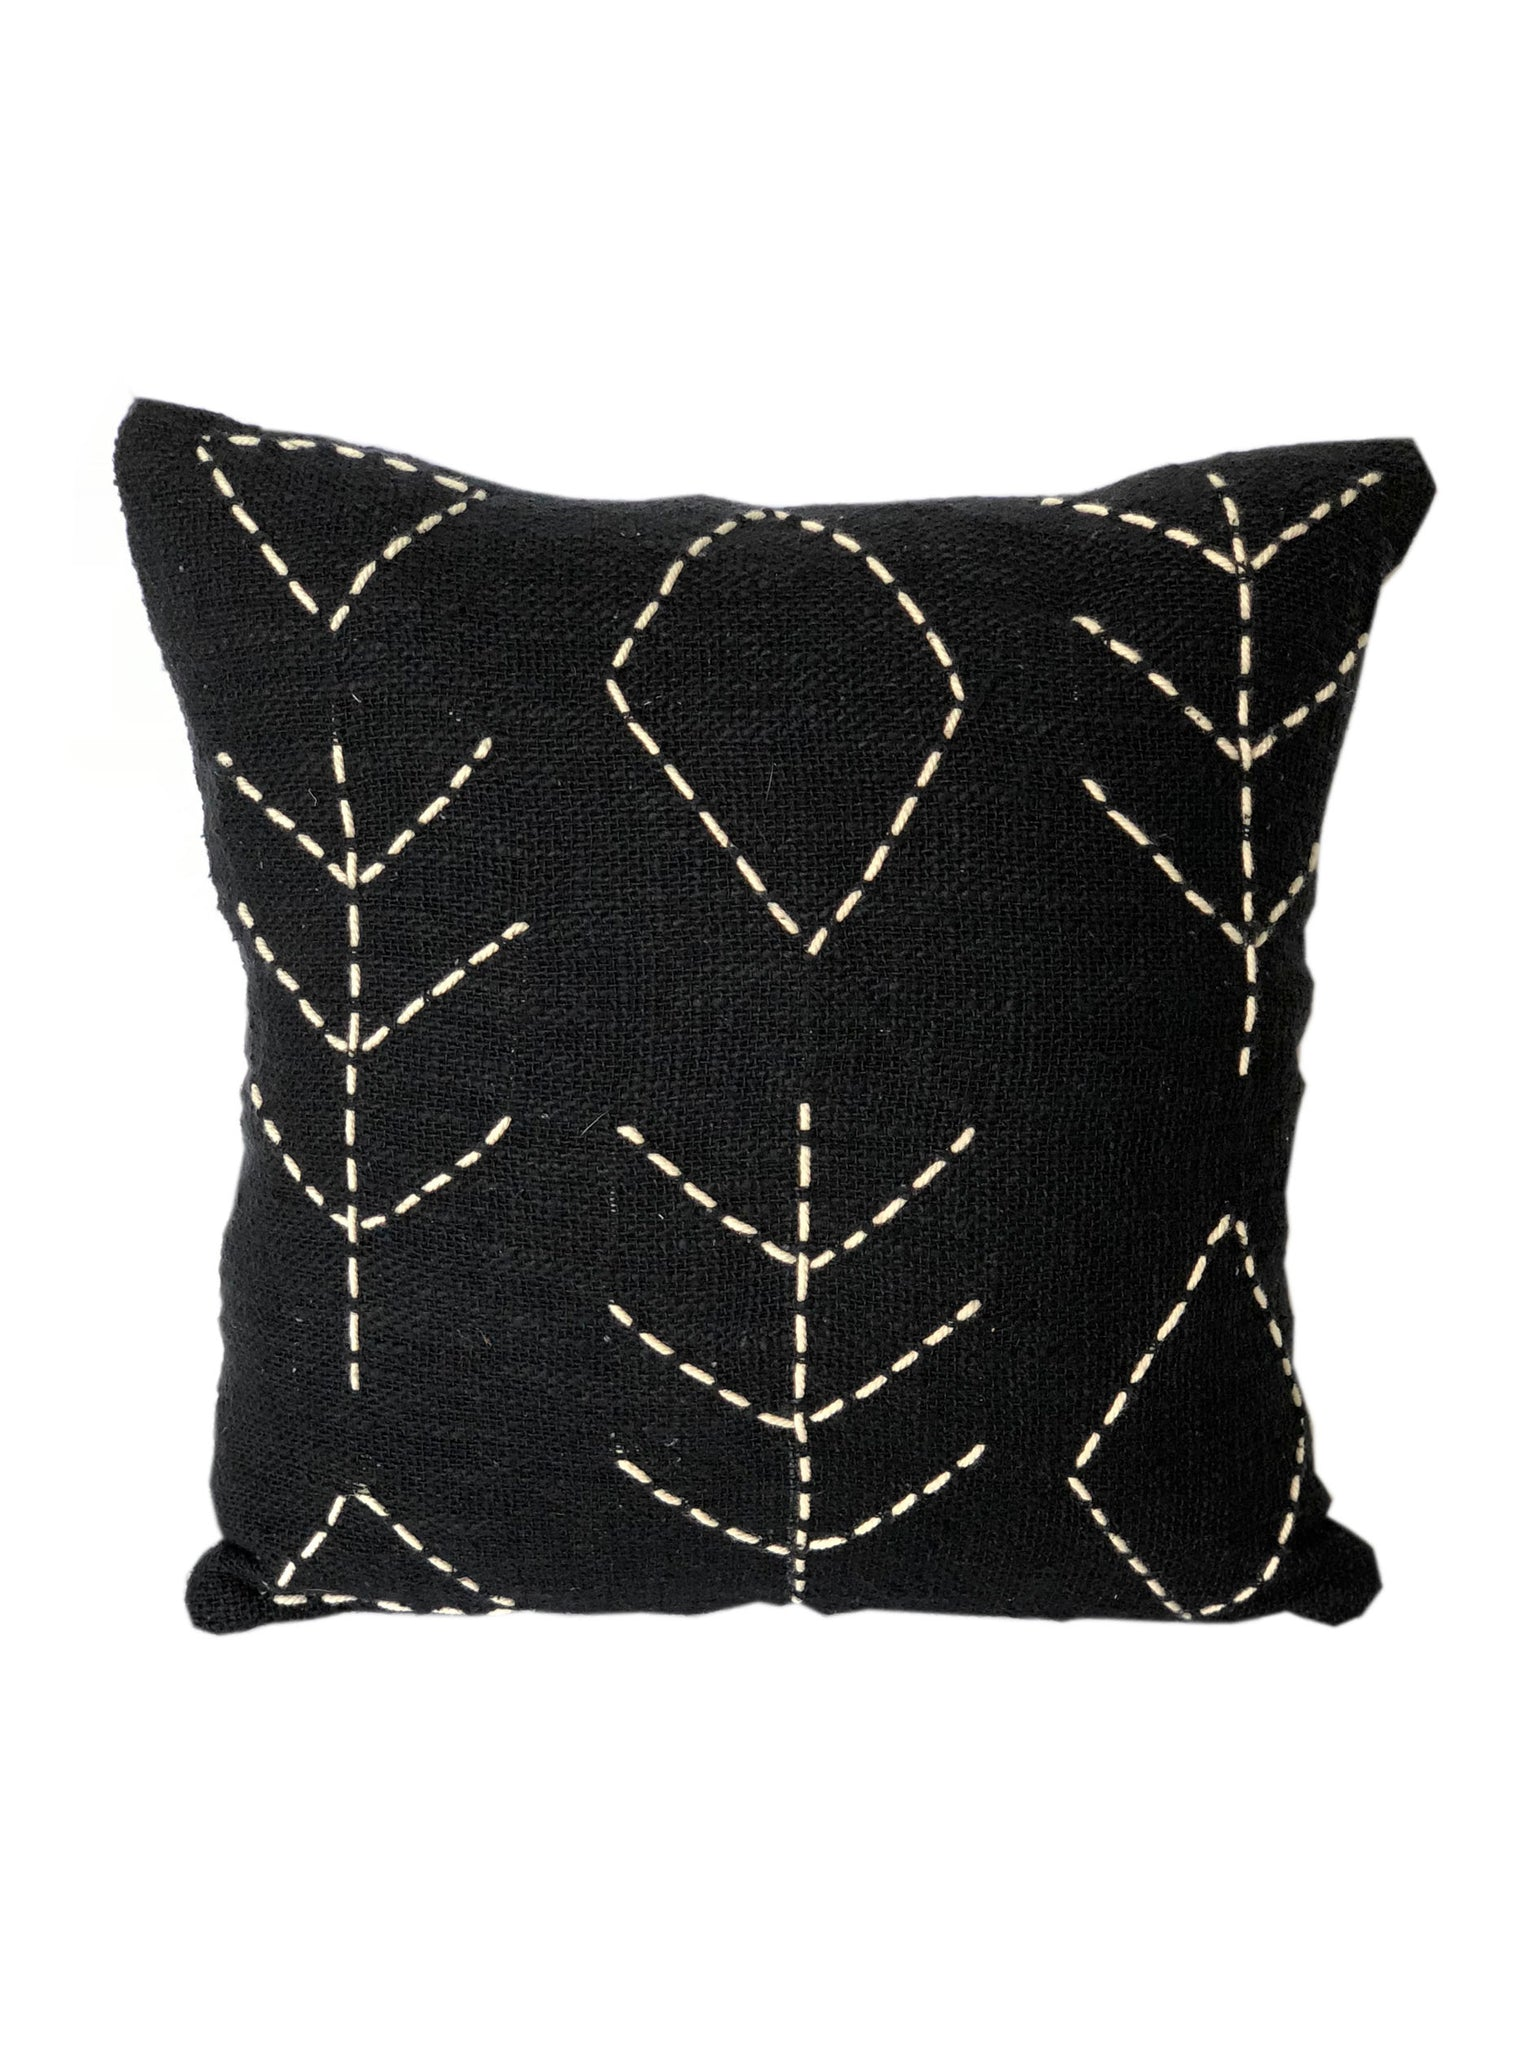 Tribal Black Textured & Embroidered Cushion 50 x 50 cm